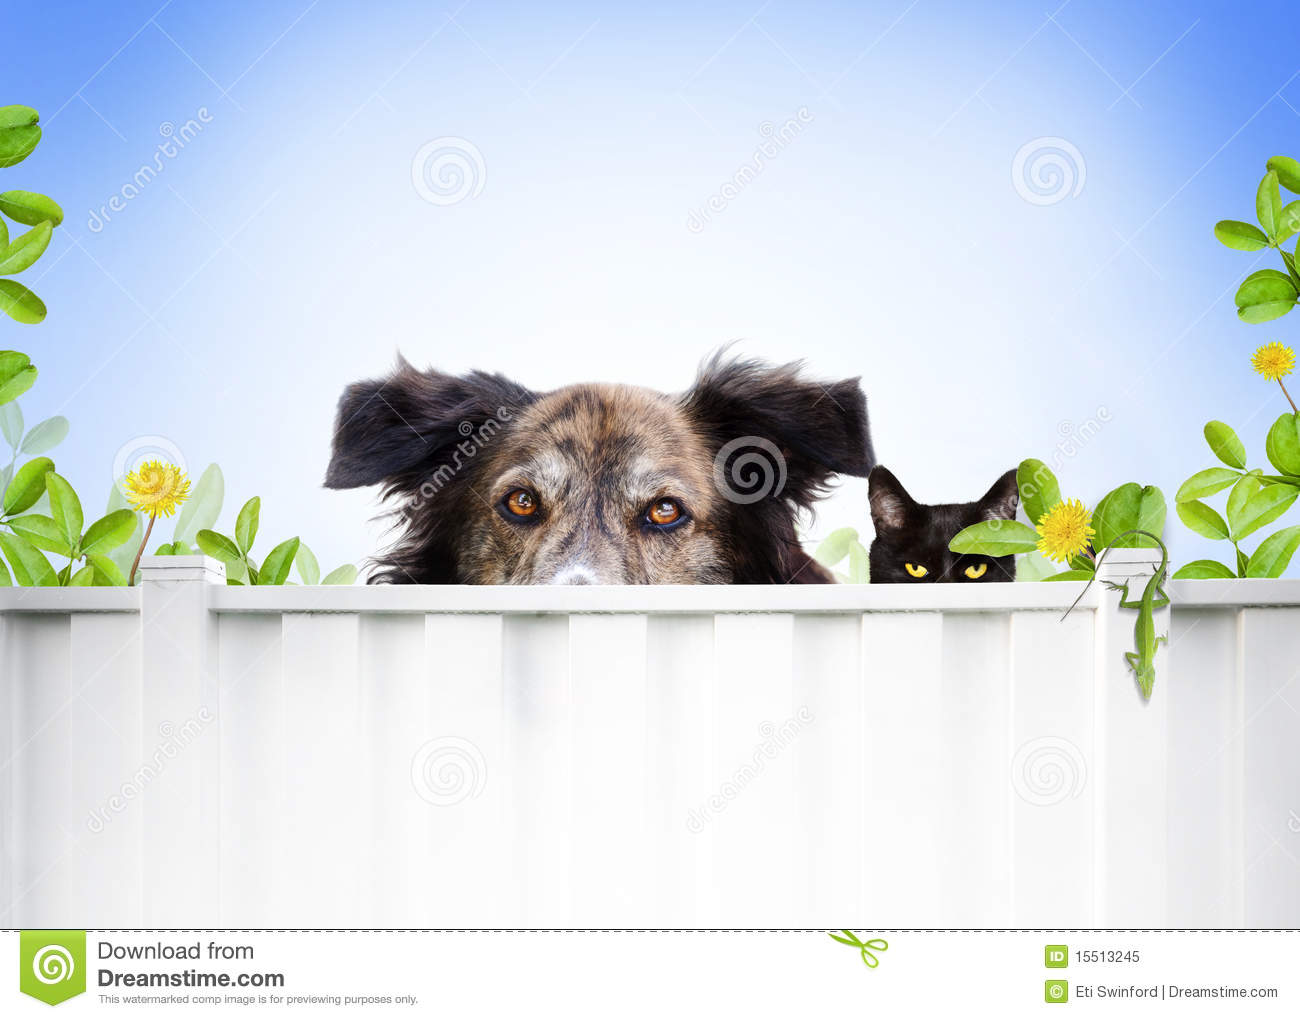 Royalty Stock Photo Dog and cat Royalty Free Stock